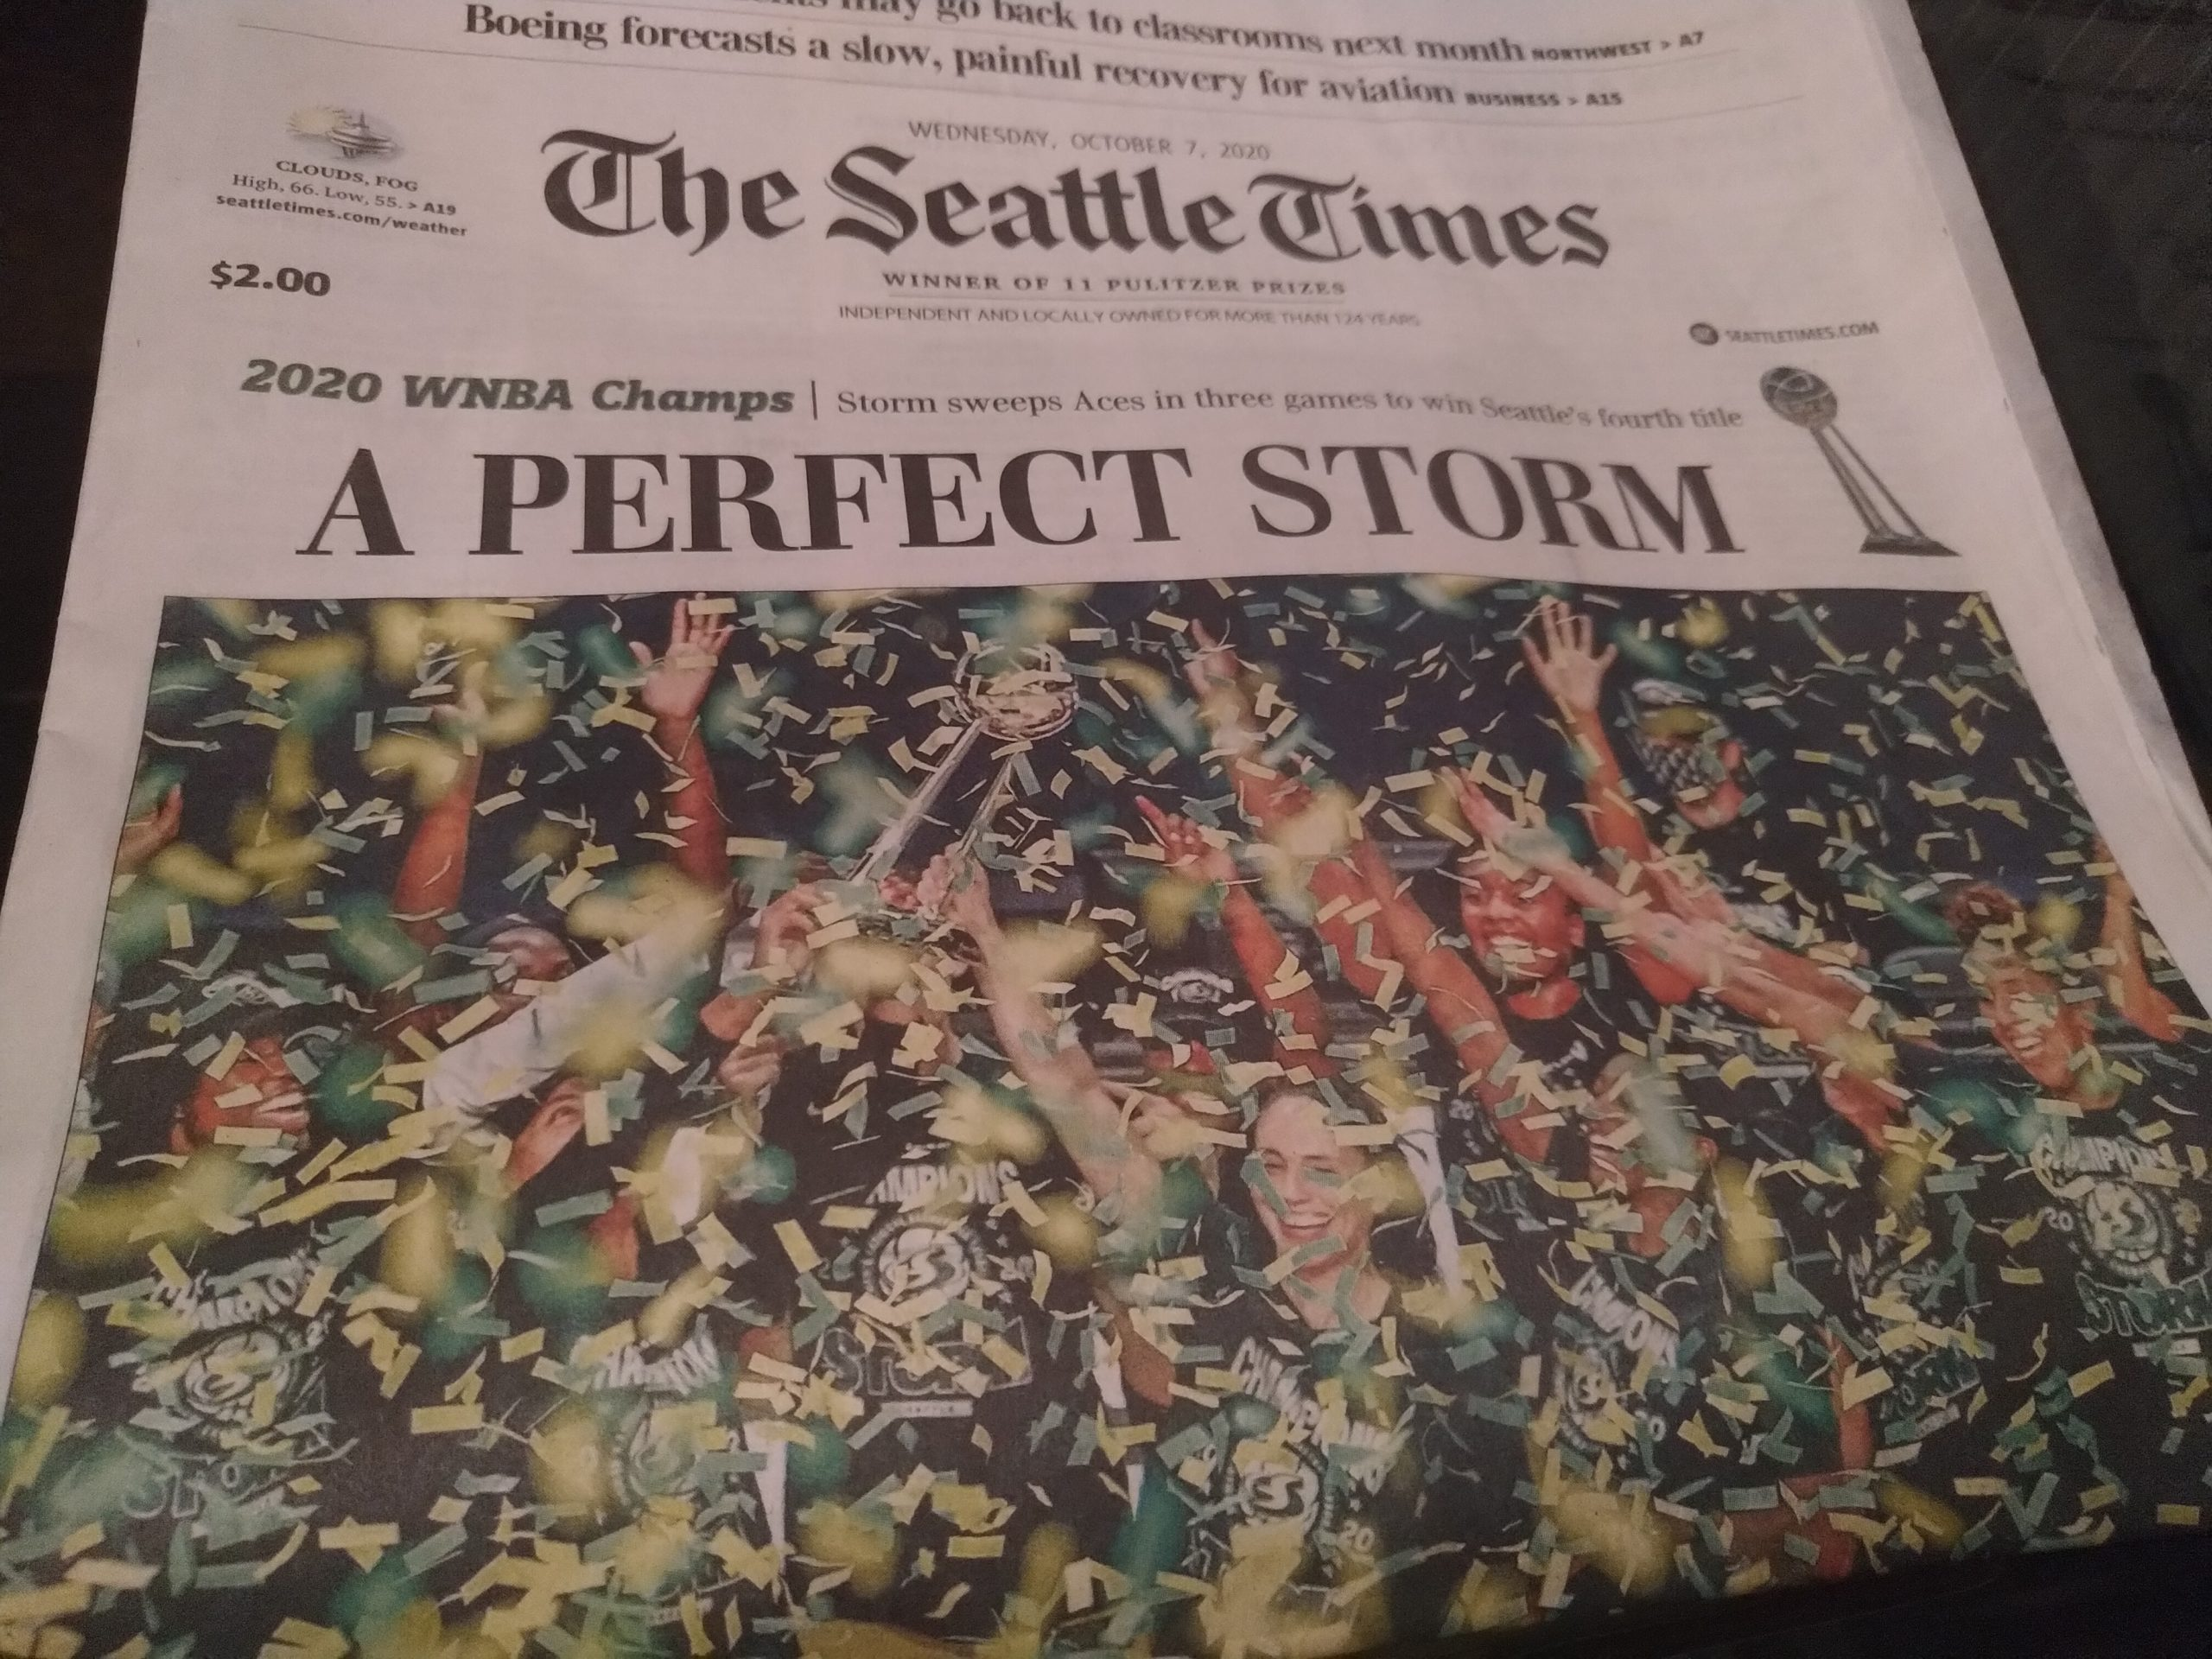 "Image description: A newspaper front page with the headline, ""A perfect Storm."" Below the headline is a photo of the Storm players, celebrating as green and yellow confetti falls around them."